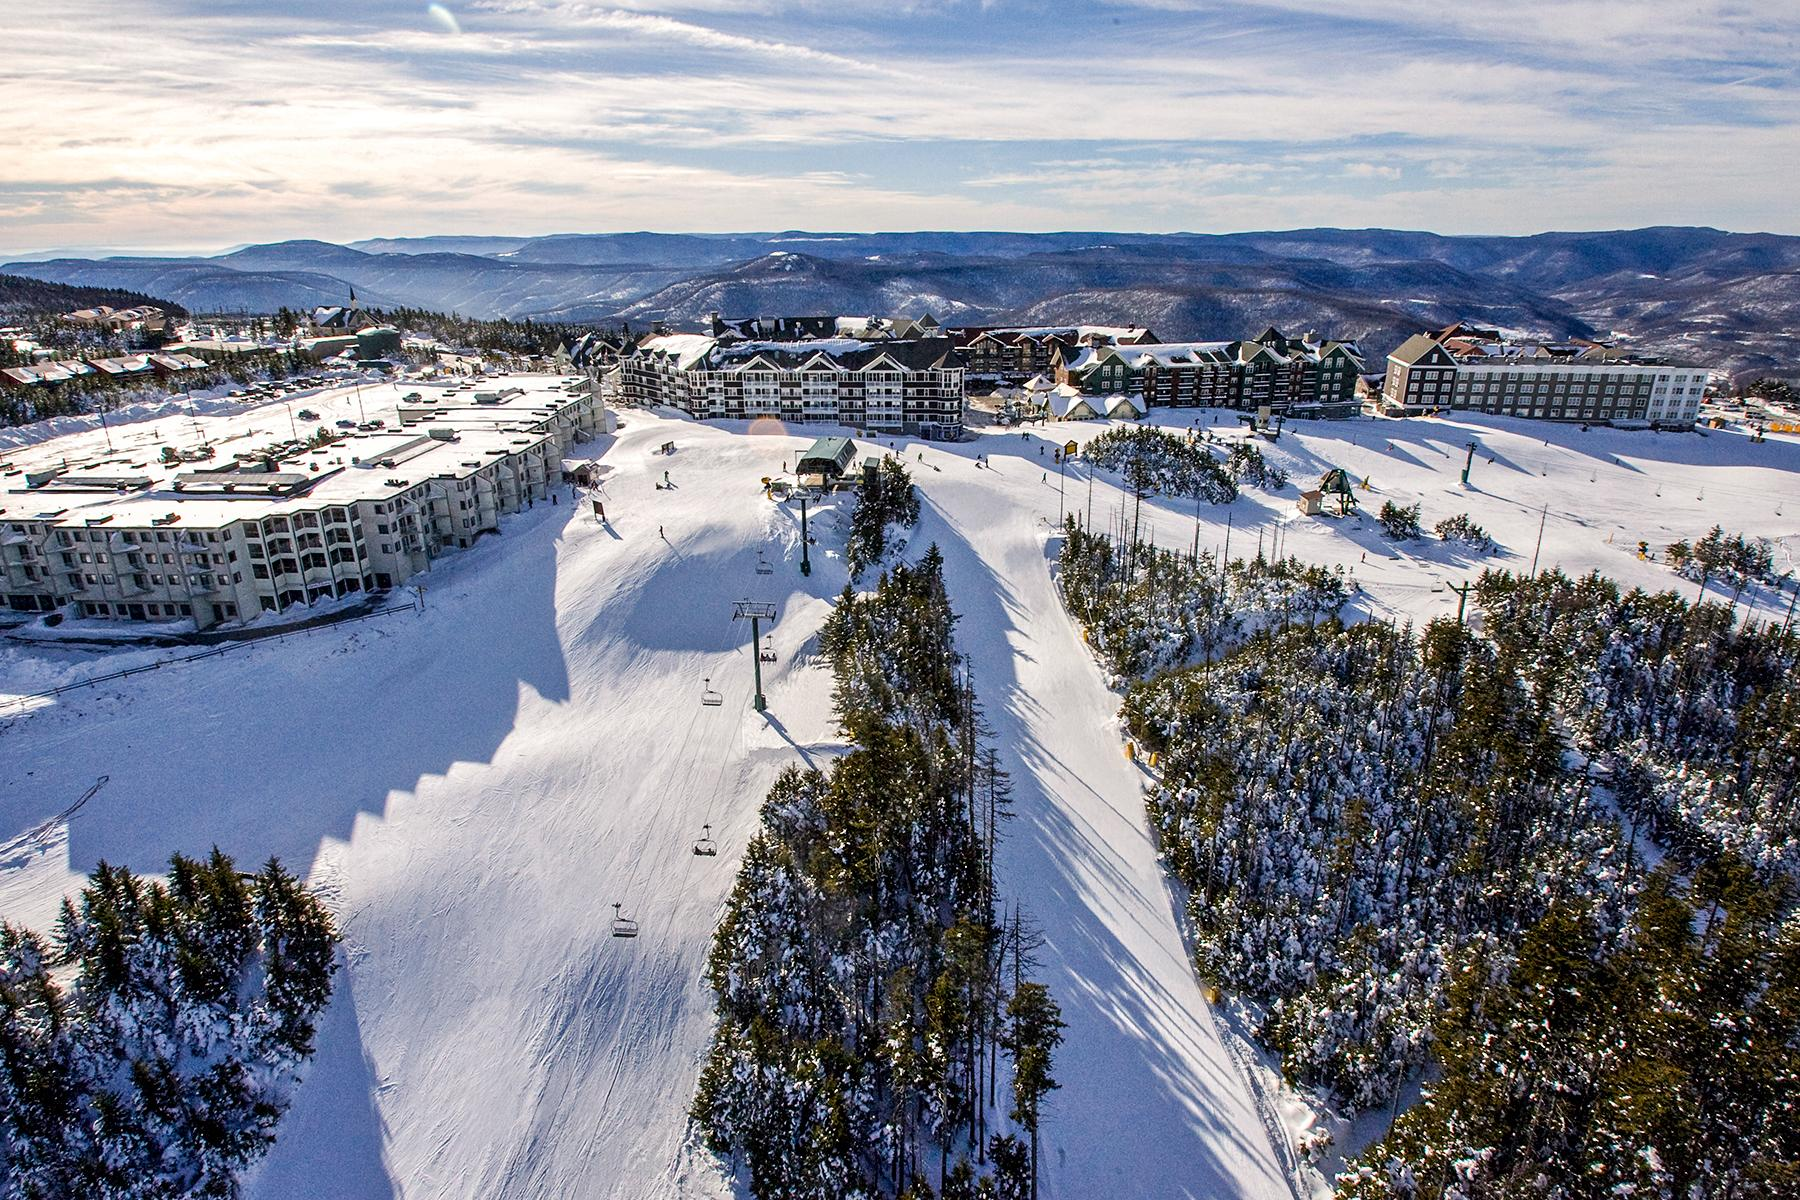 06_WestVirginia__Snowshoe_6.) village_slopes-2